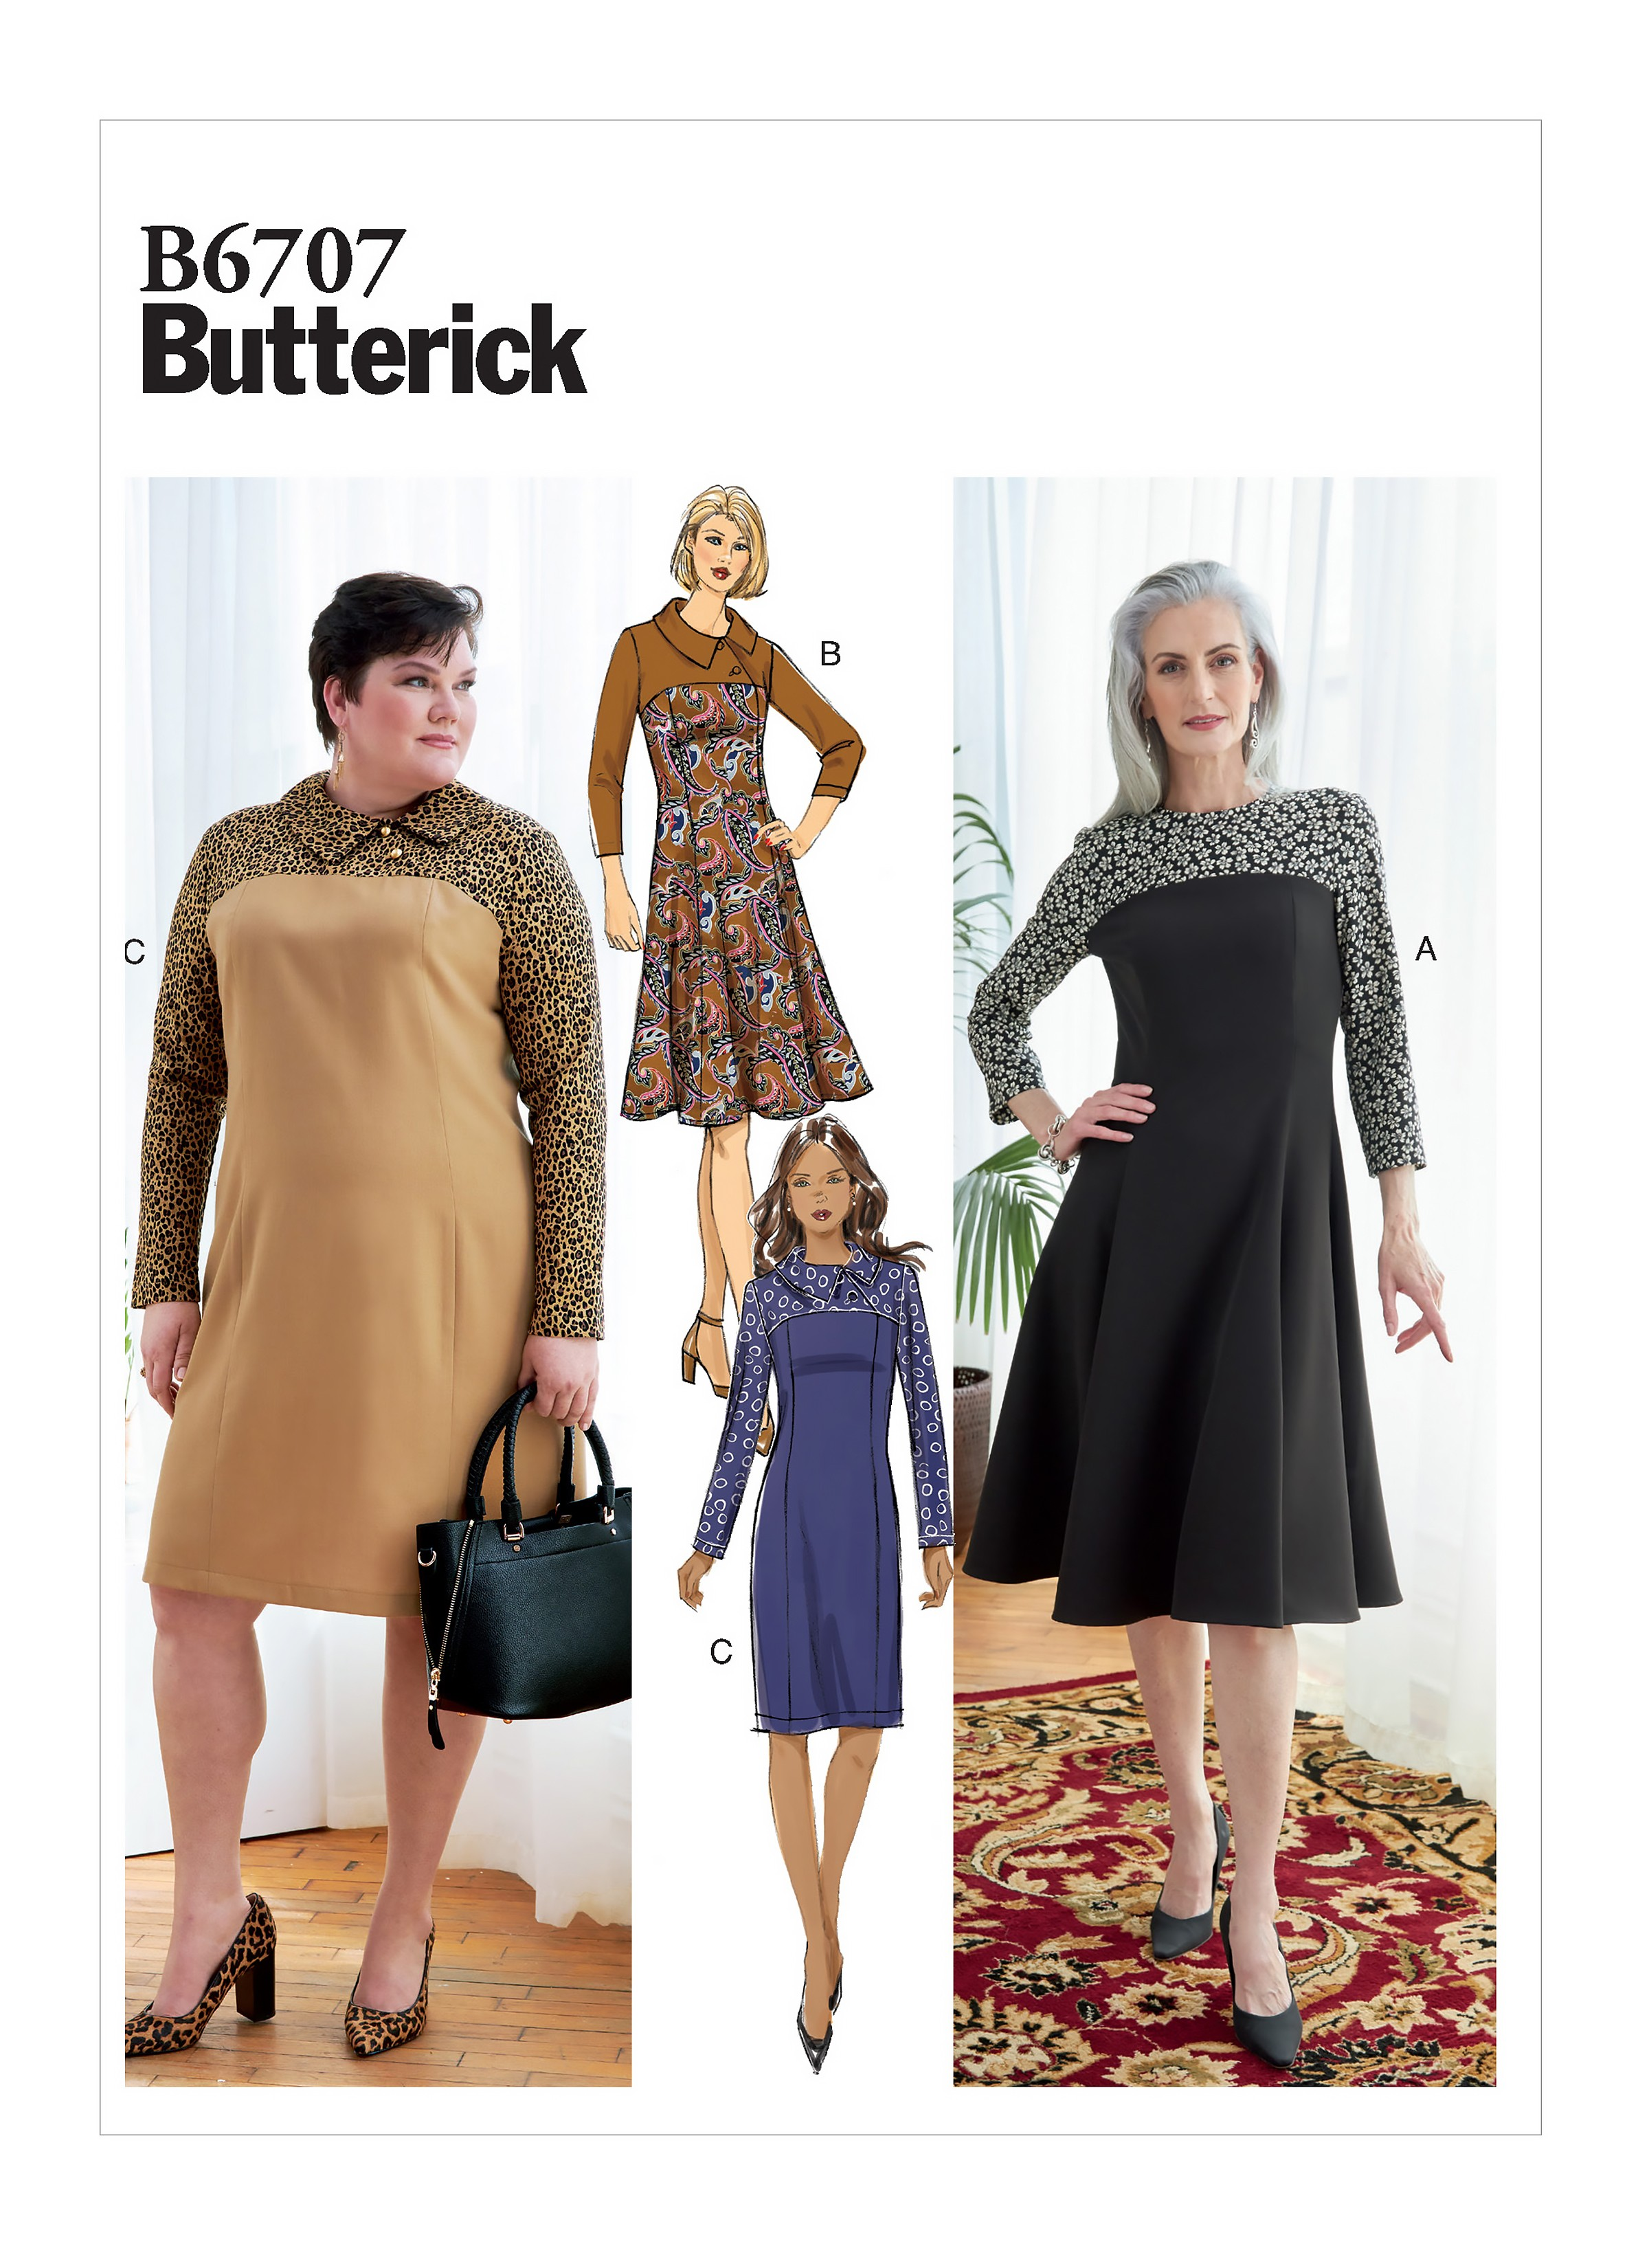 Butterick Sewing Pattern B6707 Womens Fitted Dress With Contrast Yolk